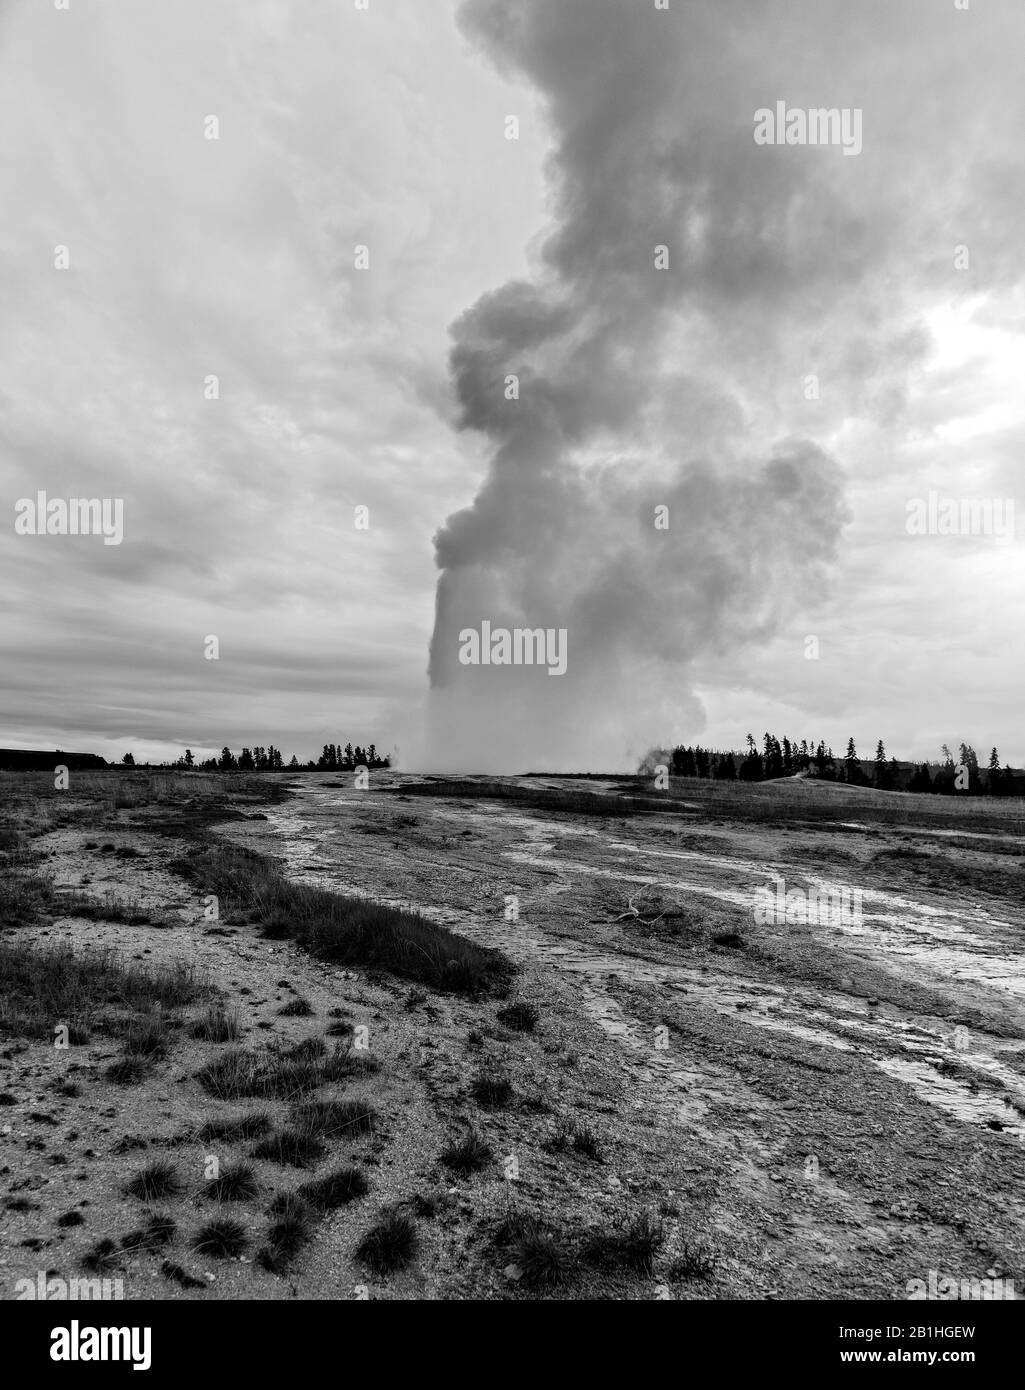 Old Faithful geyser erupting in a cloud of steam and hot water under a cloudy sky. Stock Photo